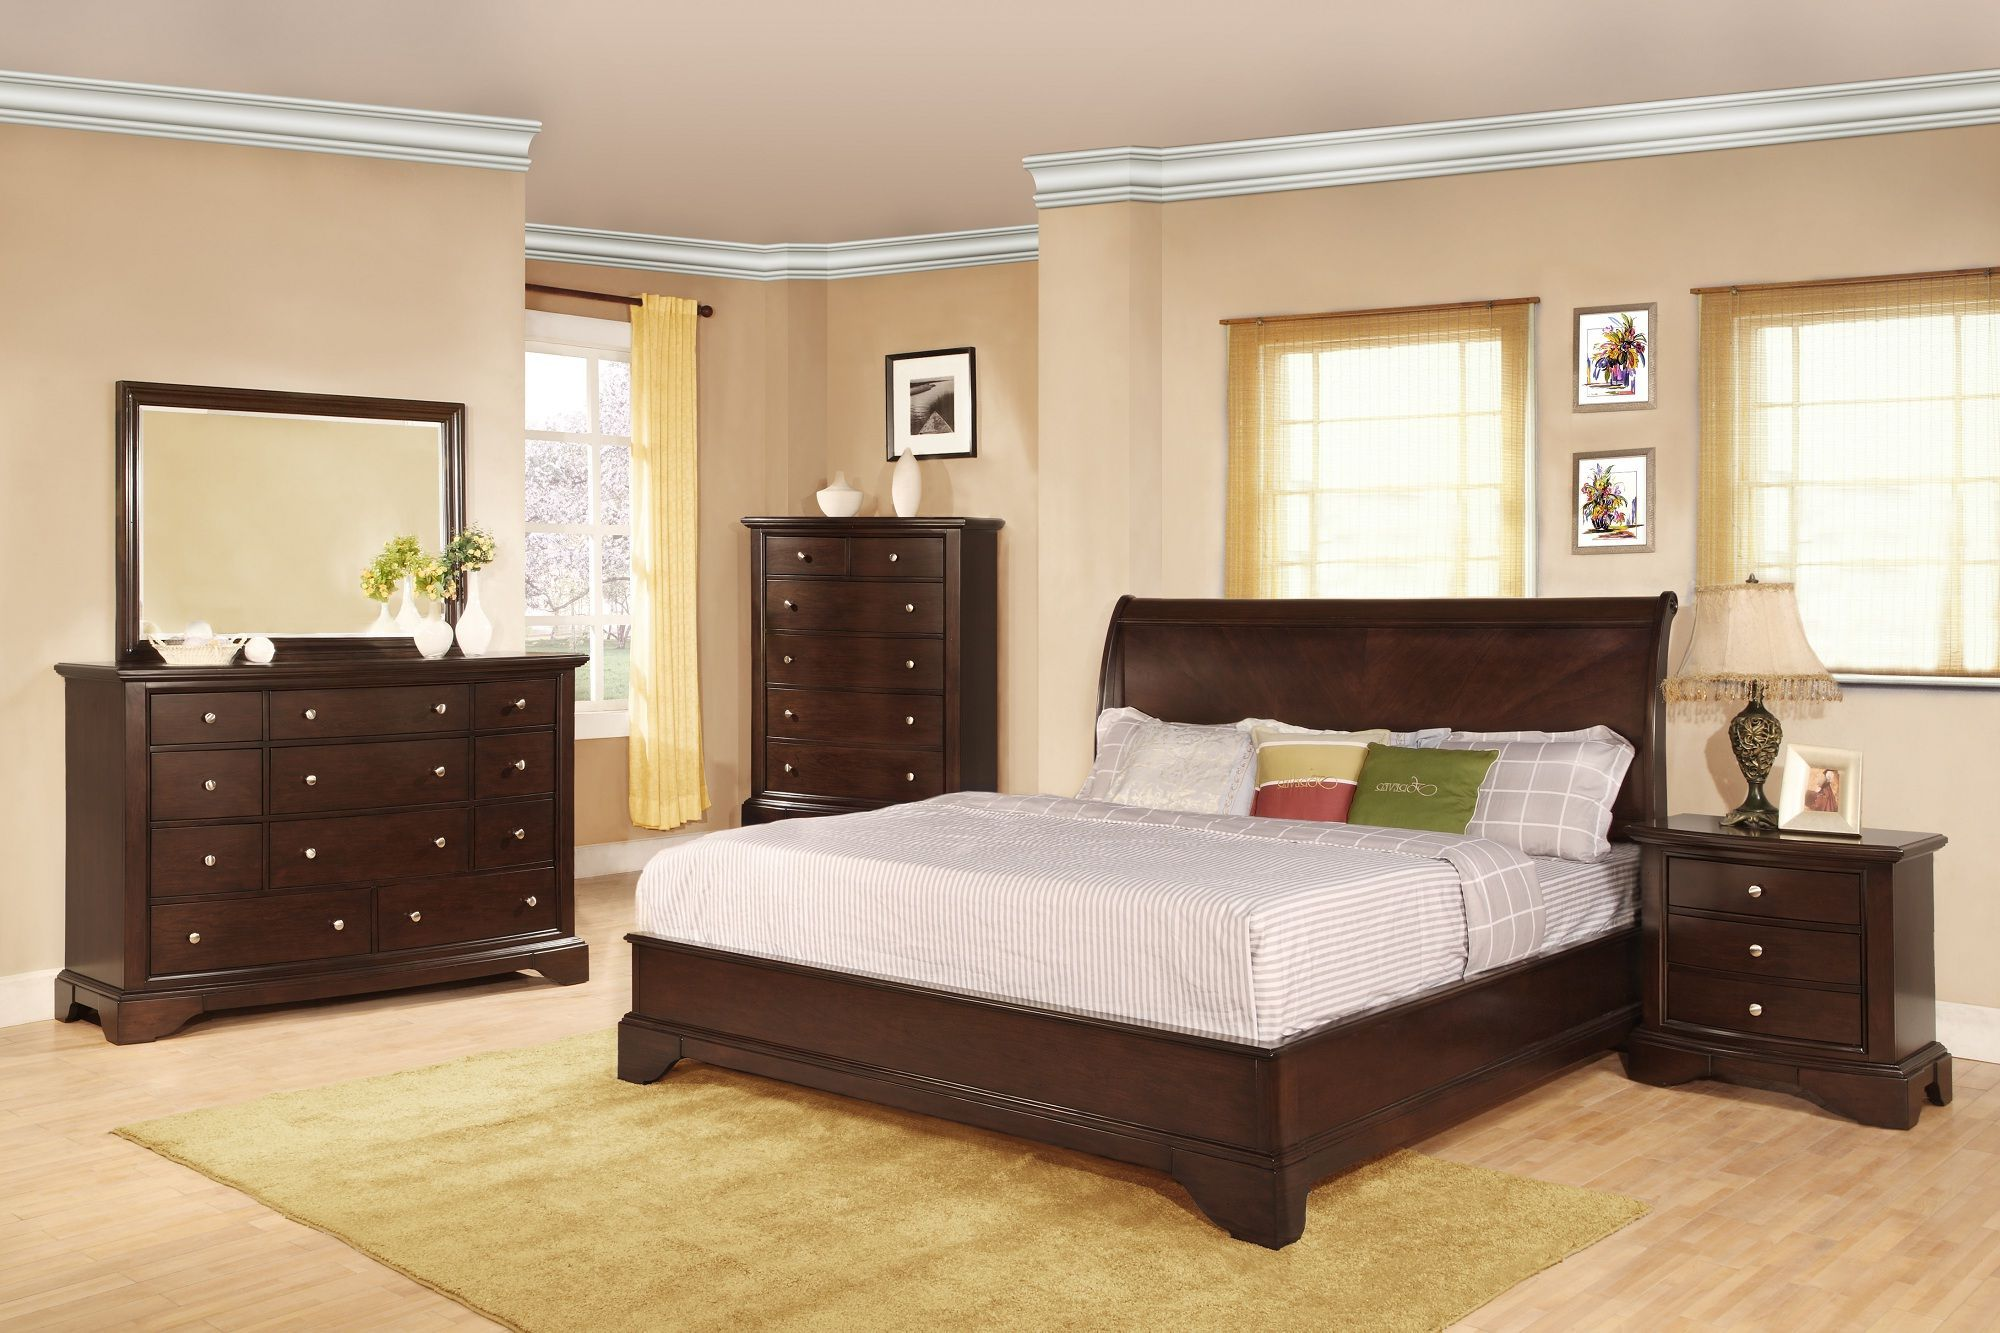 Bedroom Sets Near Me